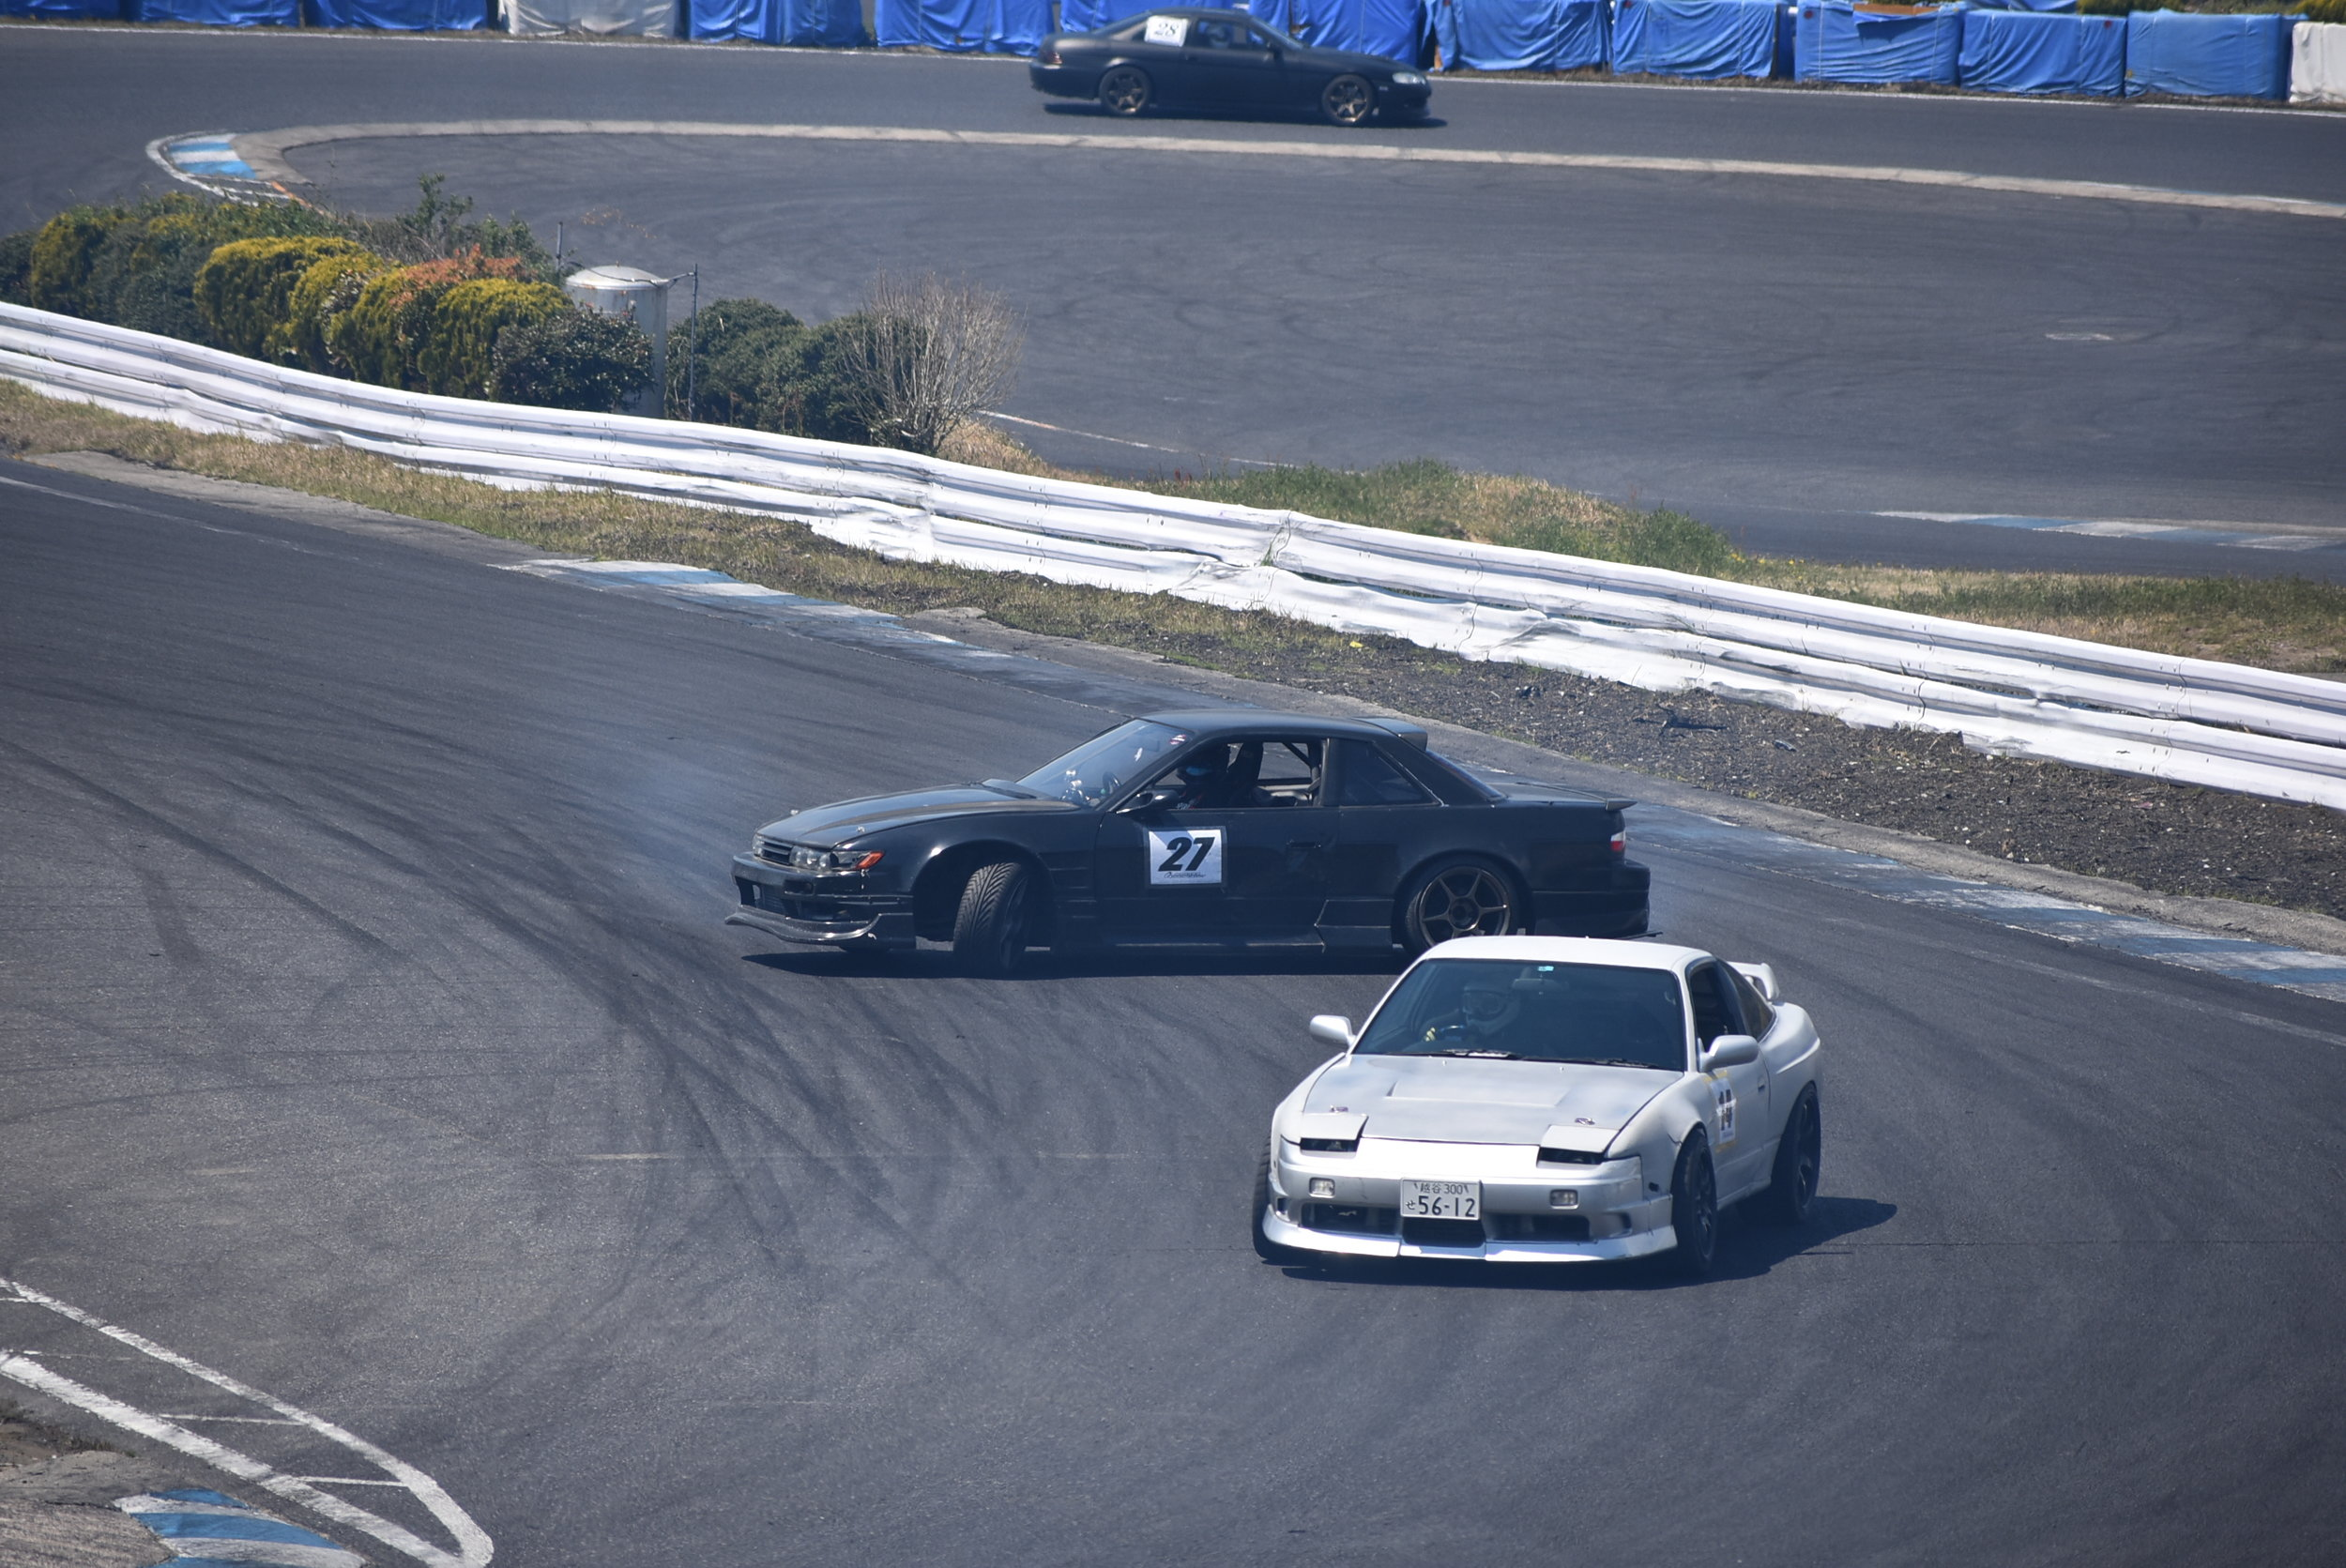 He was on a fast grip cool-down lap, and I knew I wouldn't catch him, so I tossed it in behind him. Luckily Andy caught the picture. Grip vs Drift line; it's pretty funny to see the difference.